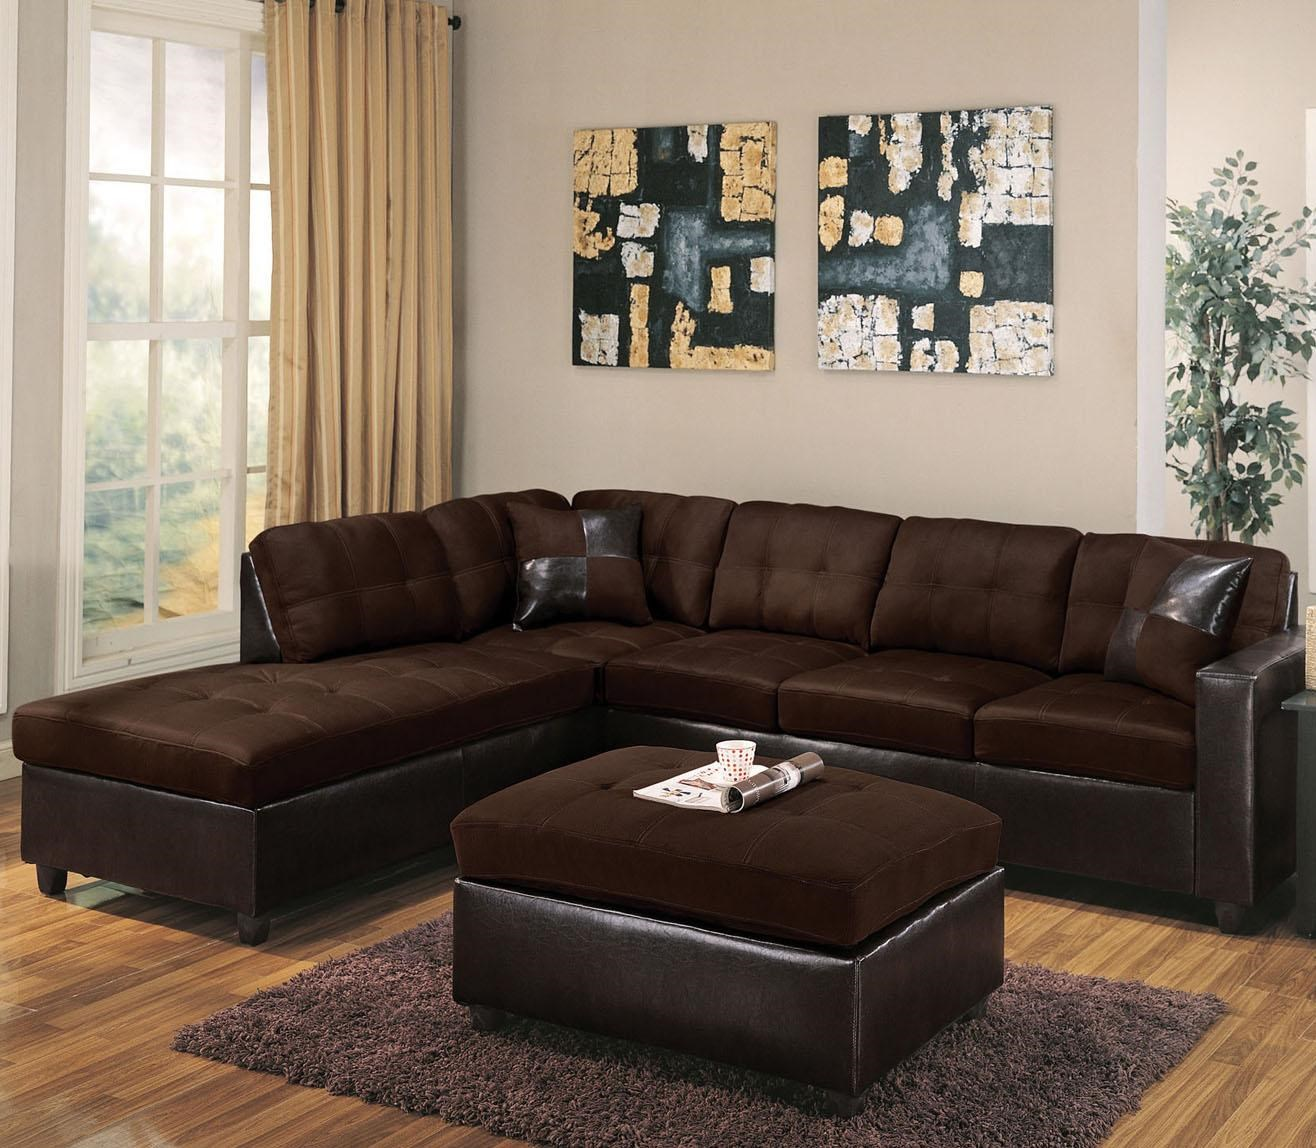 Acme Furniture Milano Chocolate2 Piece Sectional Sofa W/ RAF Chaise